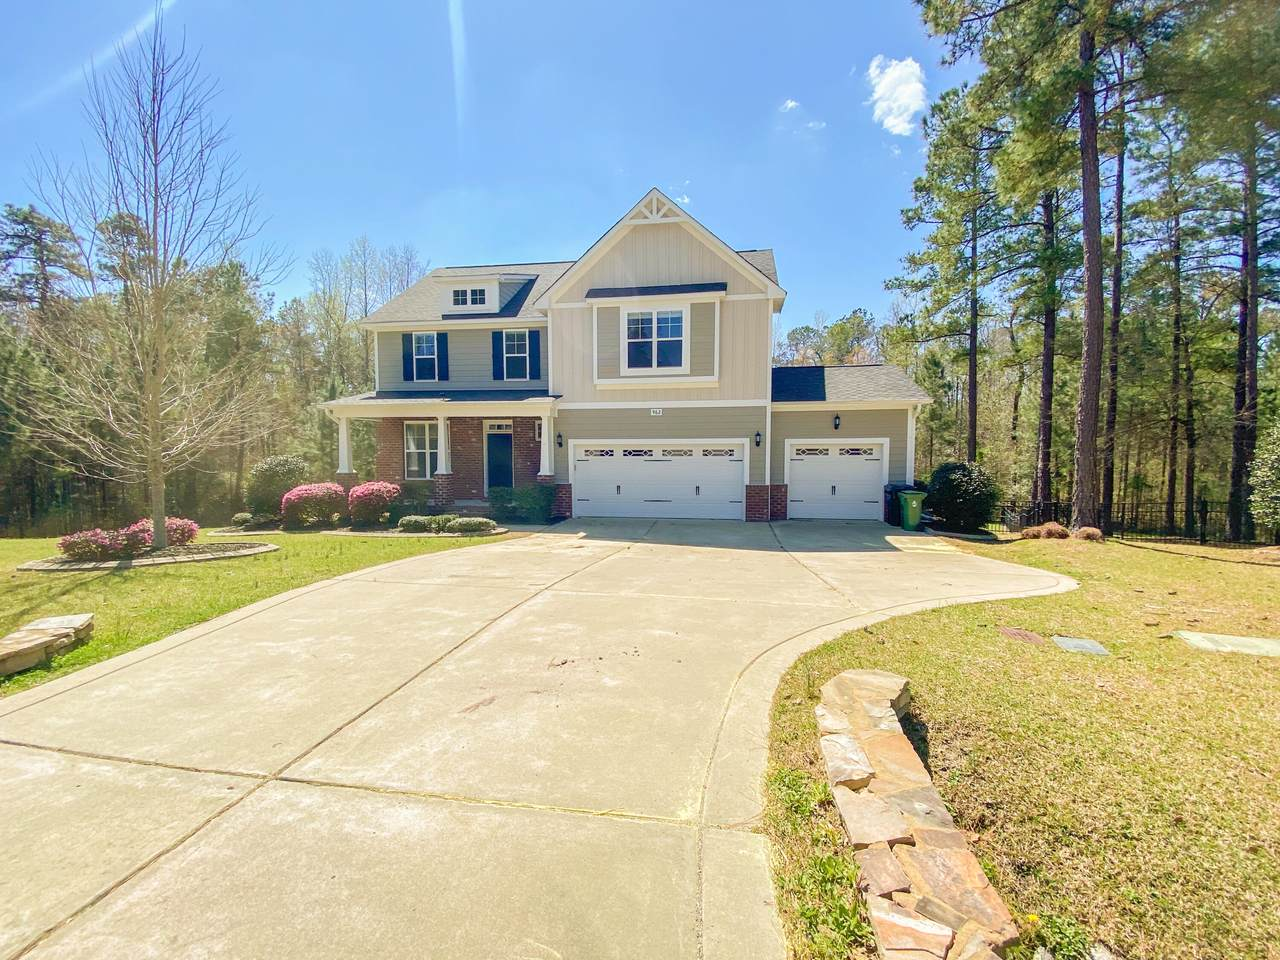 962 Whispering Pines Drive - Photo 1